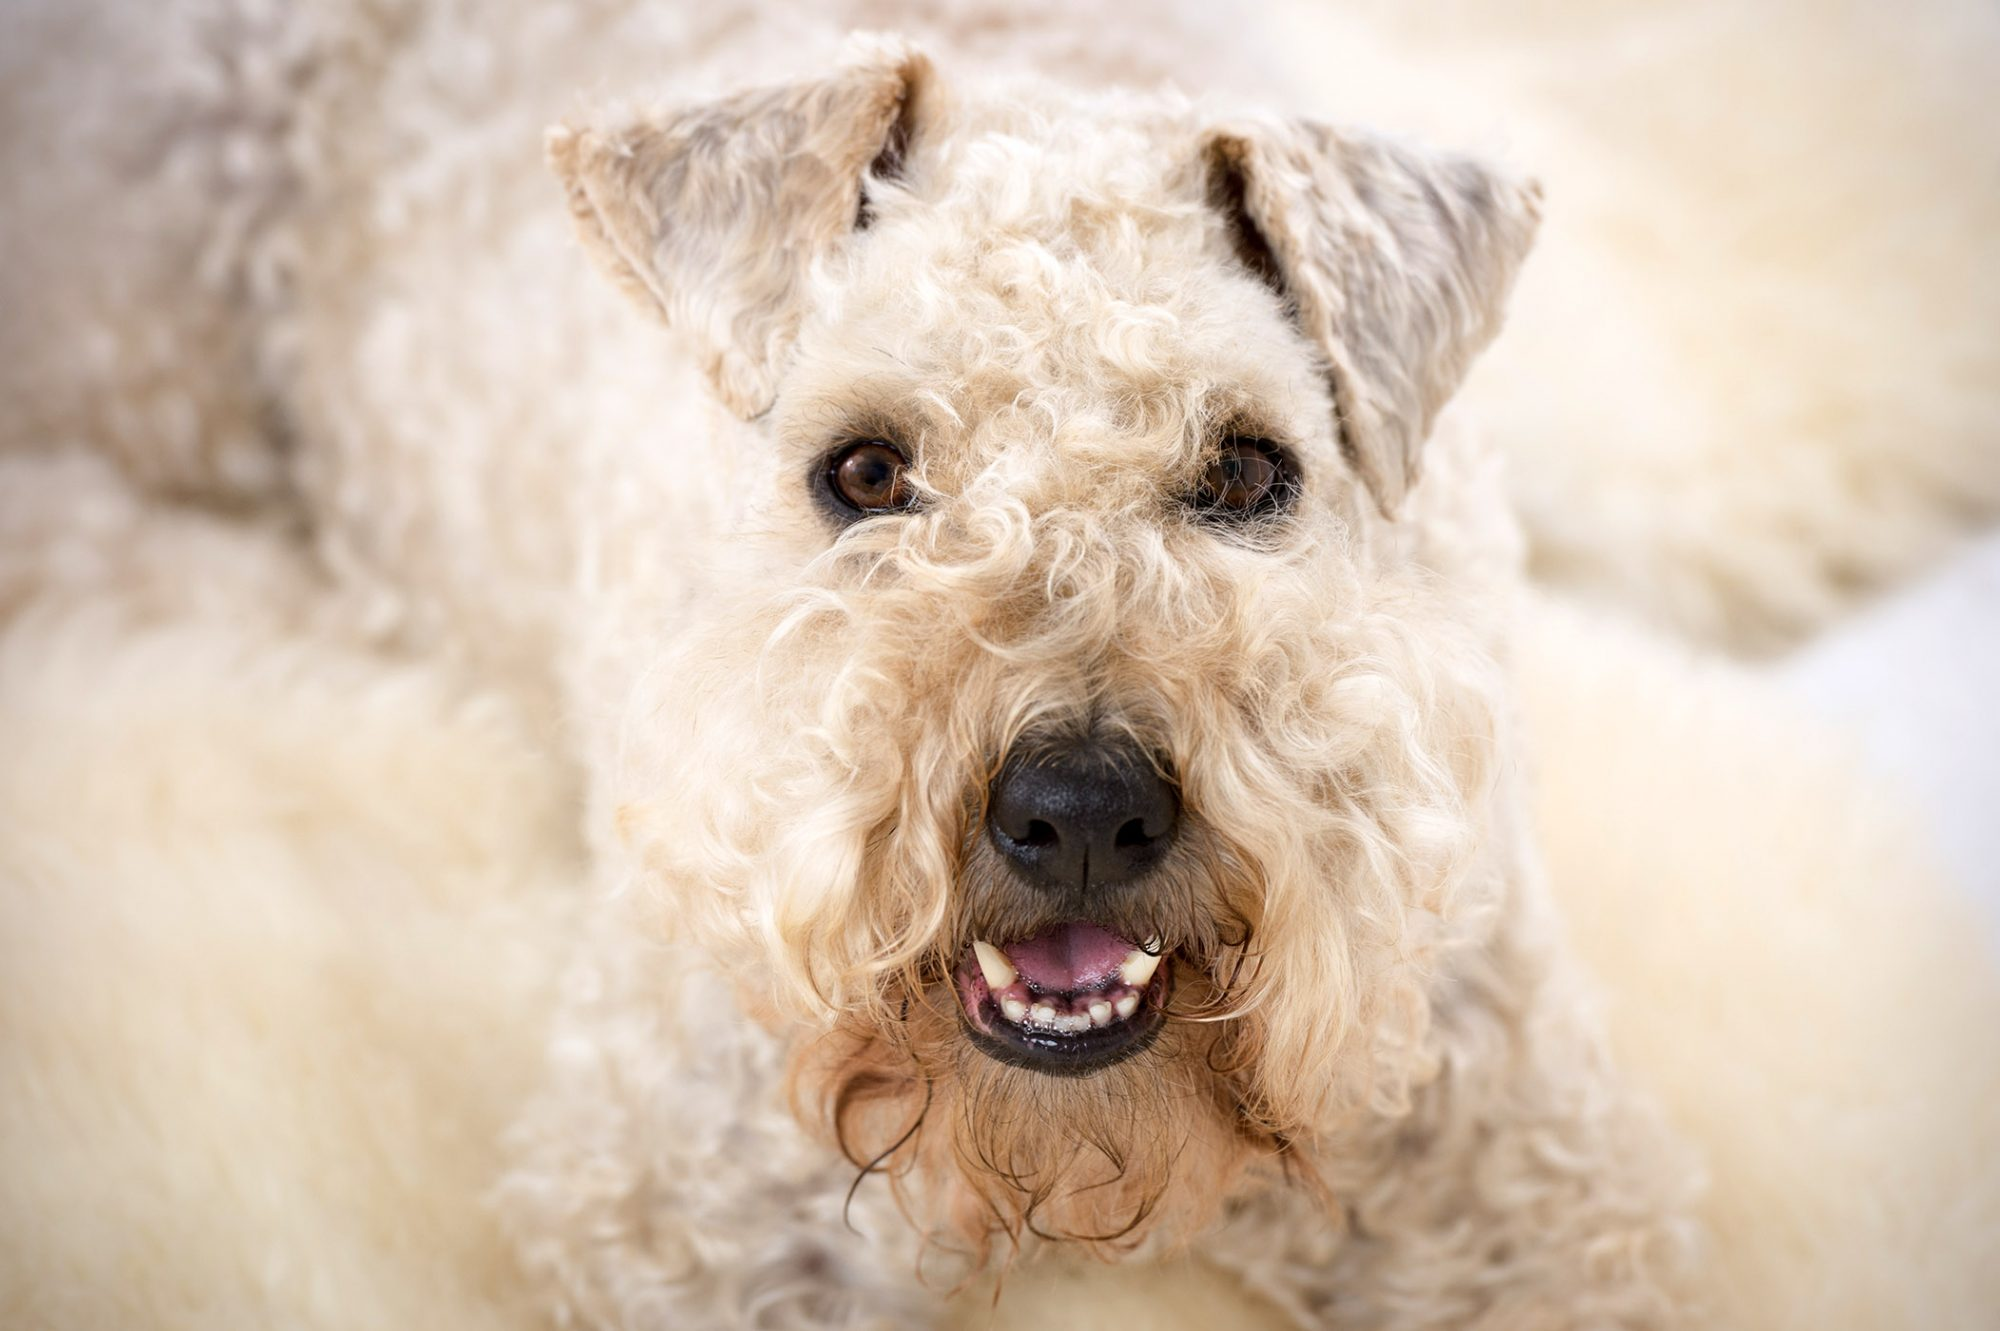 soft coated wheaten terrier closeup face